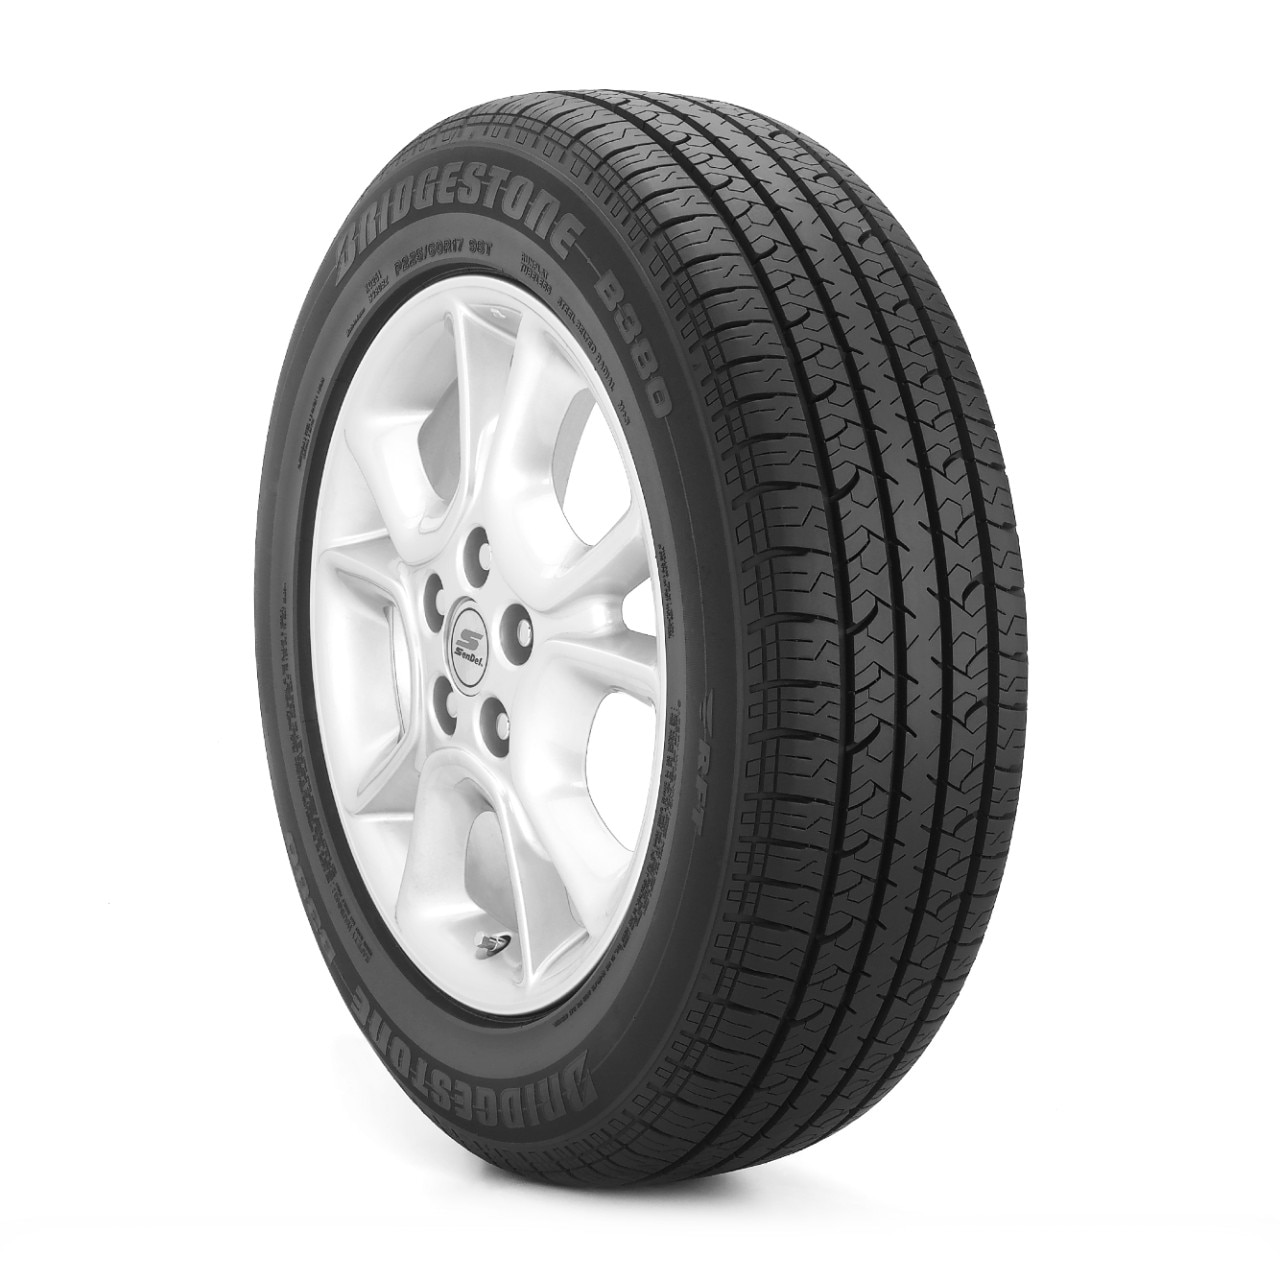 Bridgestone Other B380 RFT